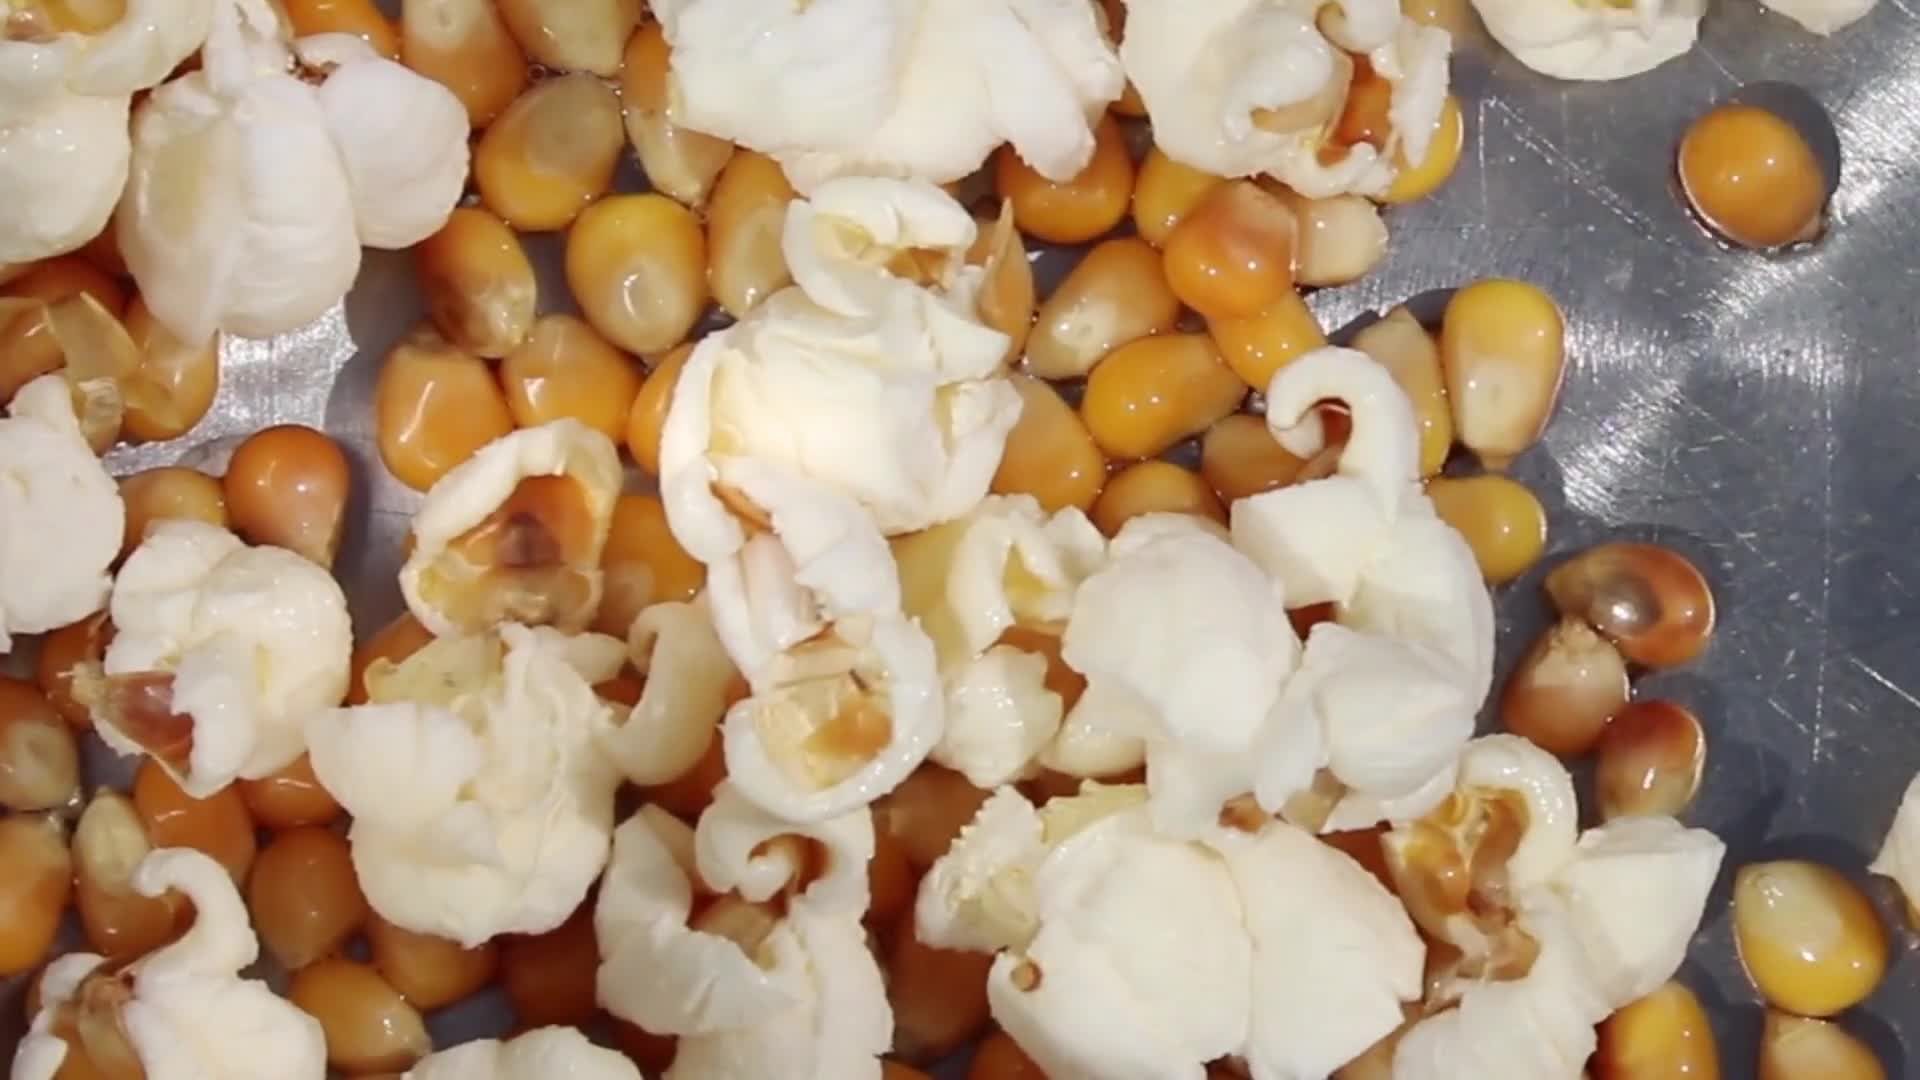 Popcorn popping cooking food snack